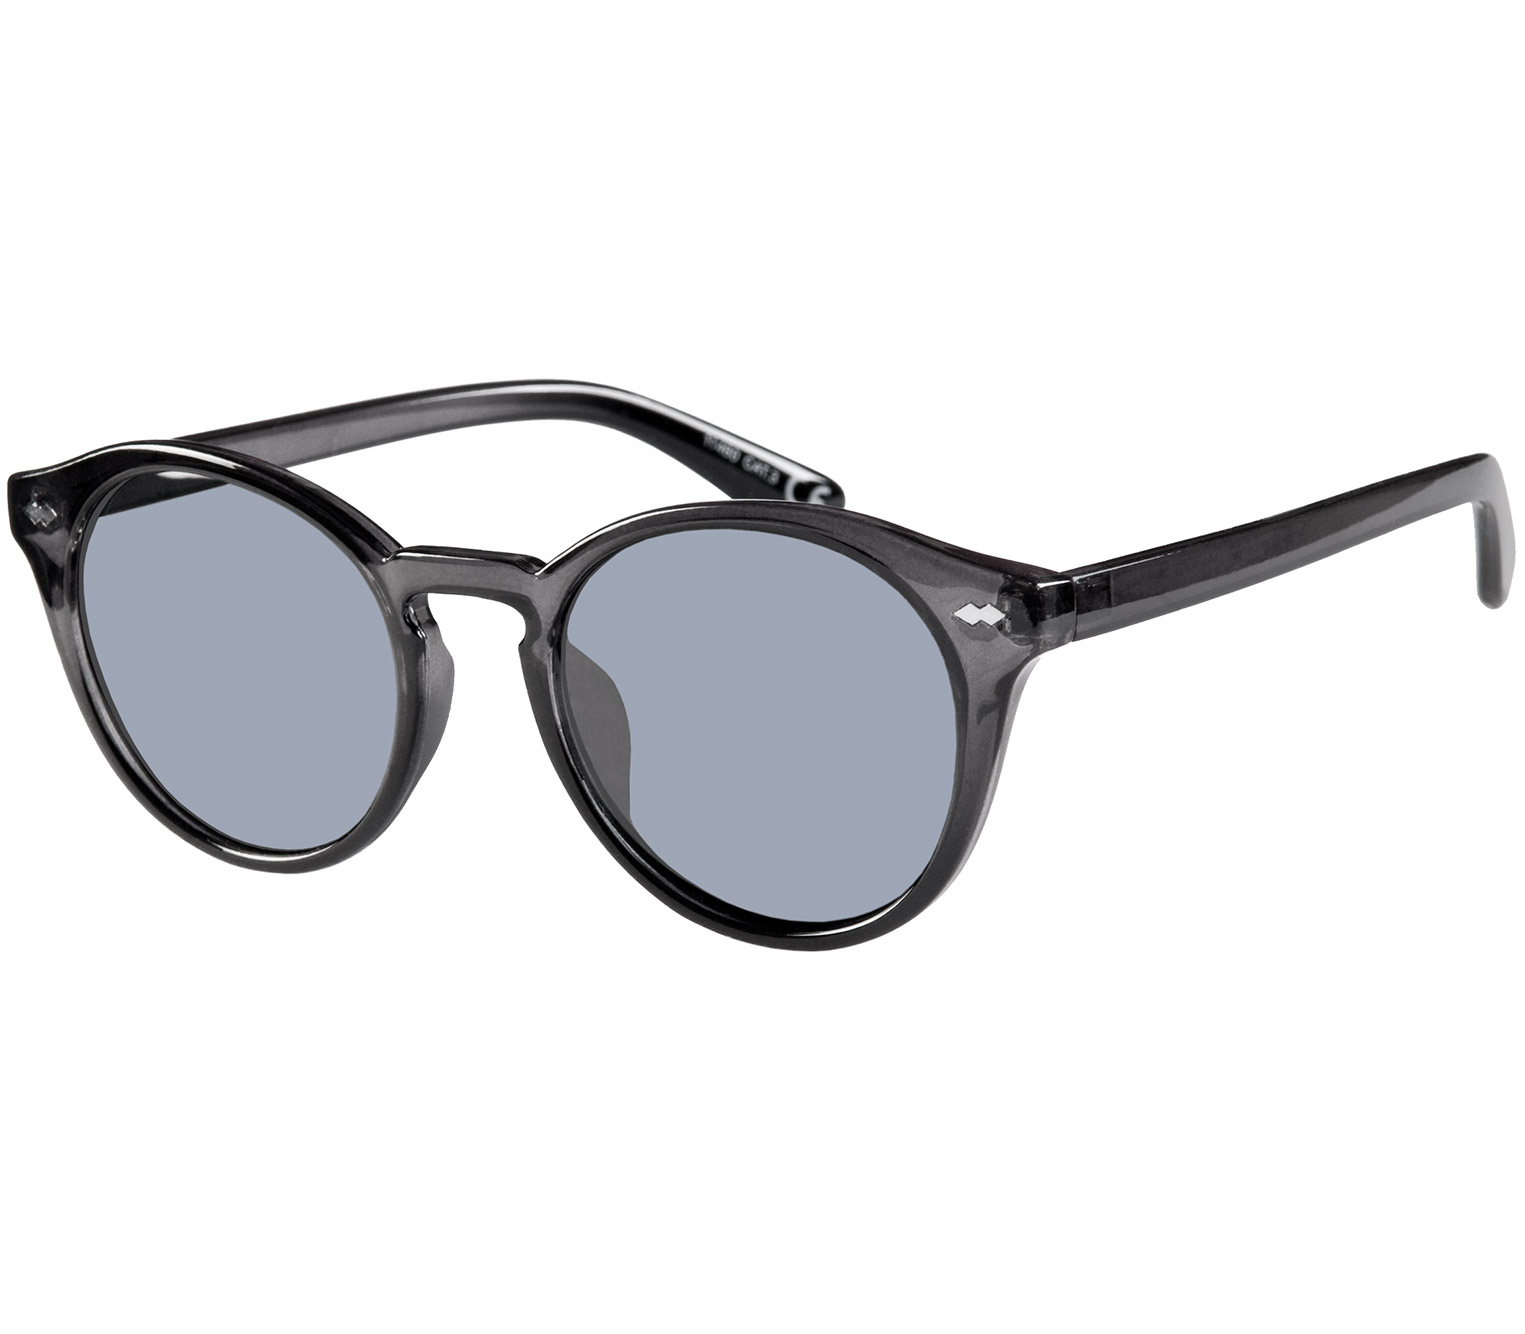 Main Image (Angle) - Lorenzo (Grey) Retro Sunglasses